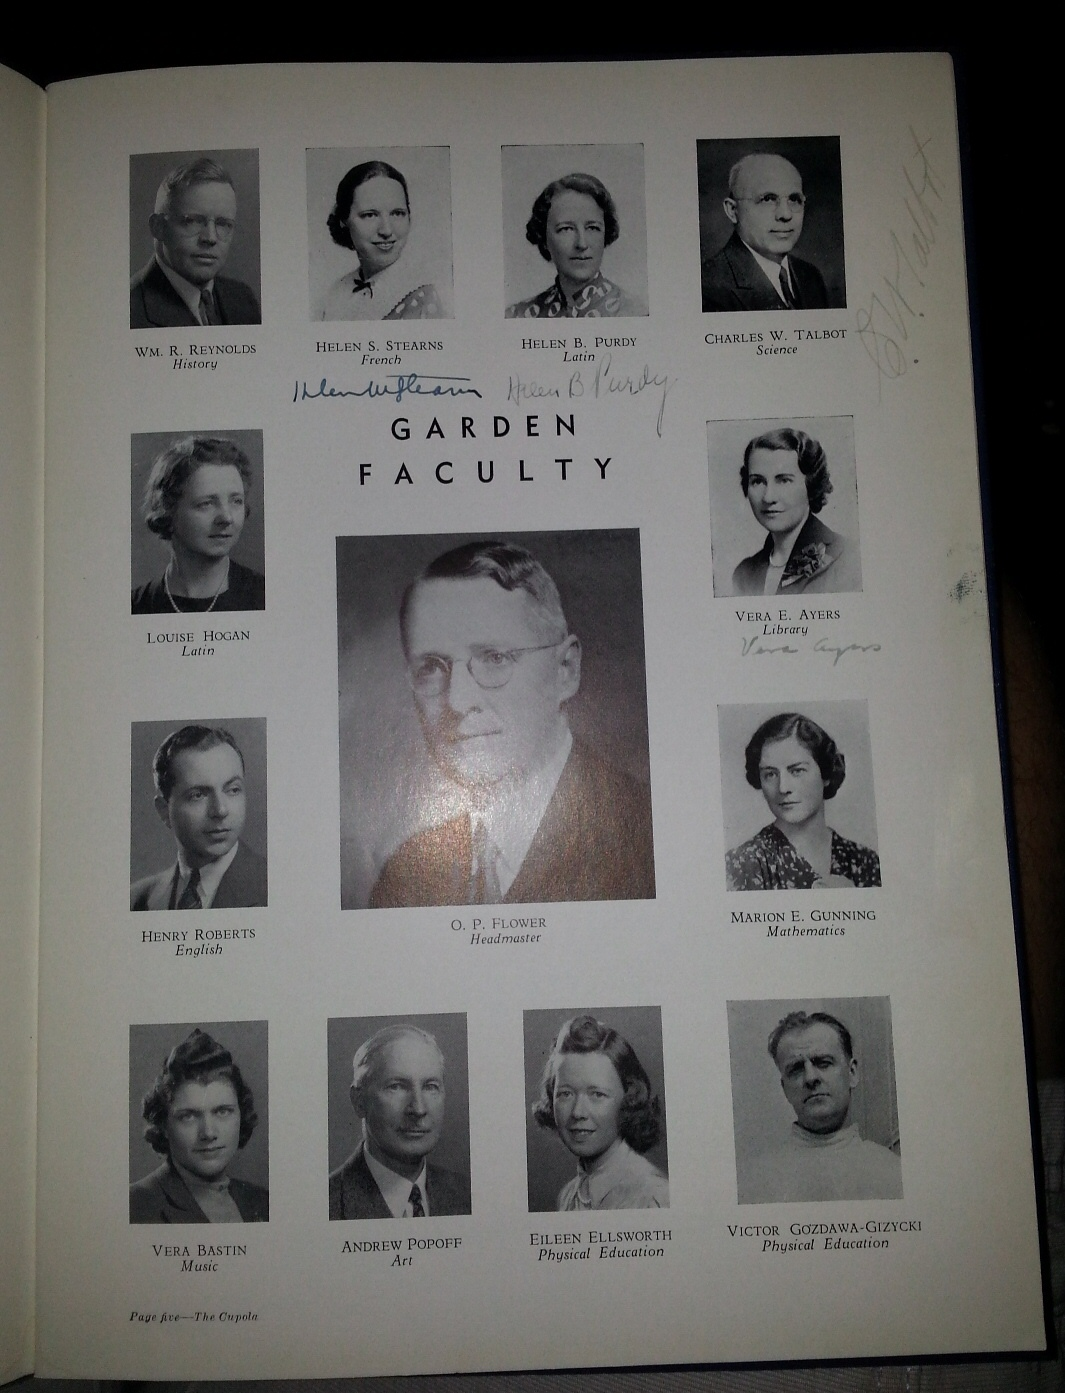 The Cupola - 1941 - Yearbook, Garden Country Day (High) School - (Jackson Heights, New York)